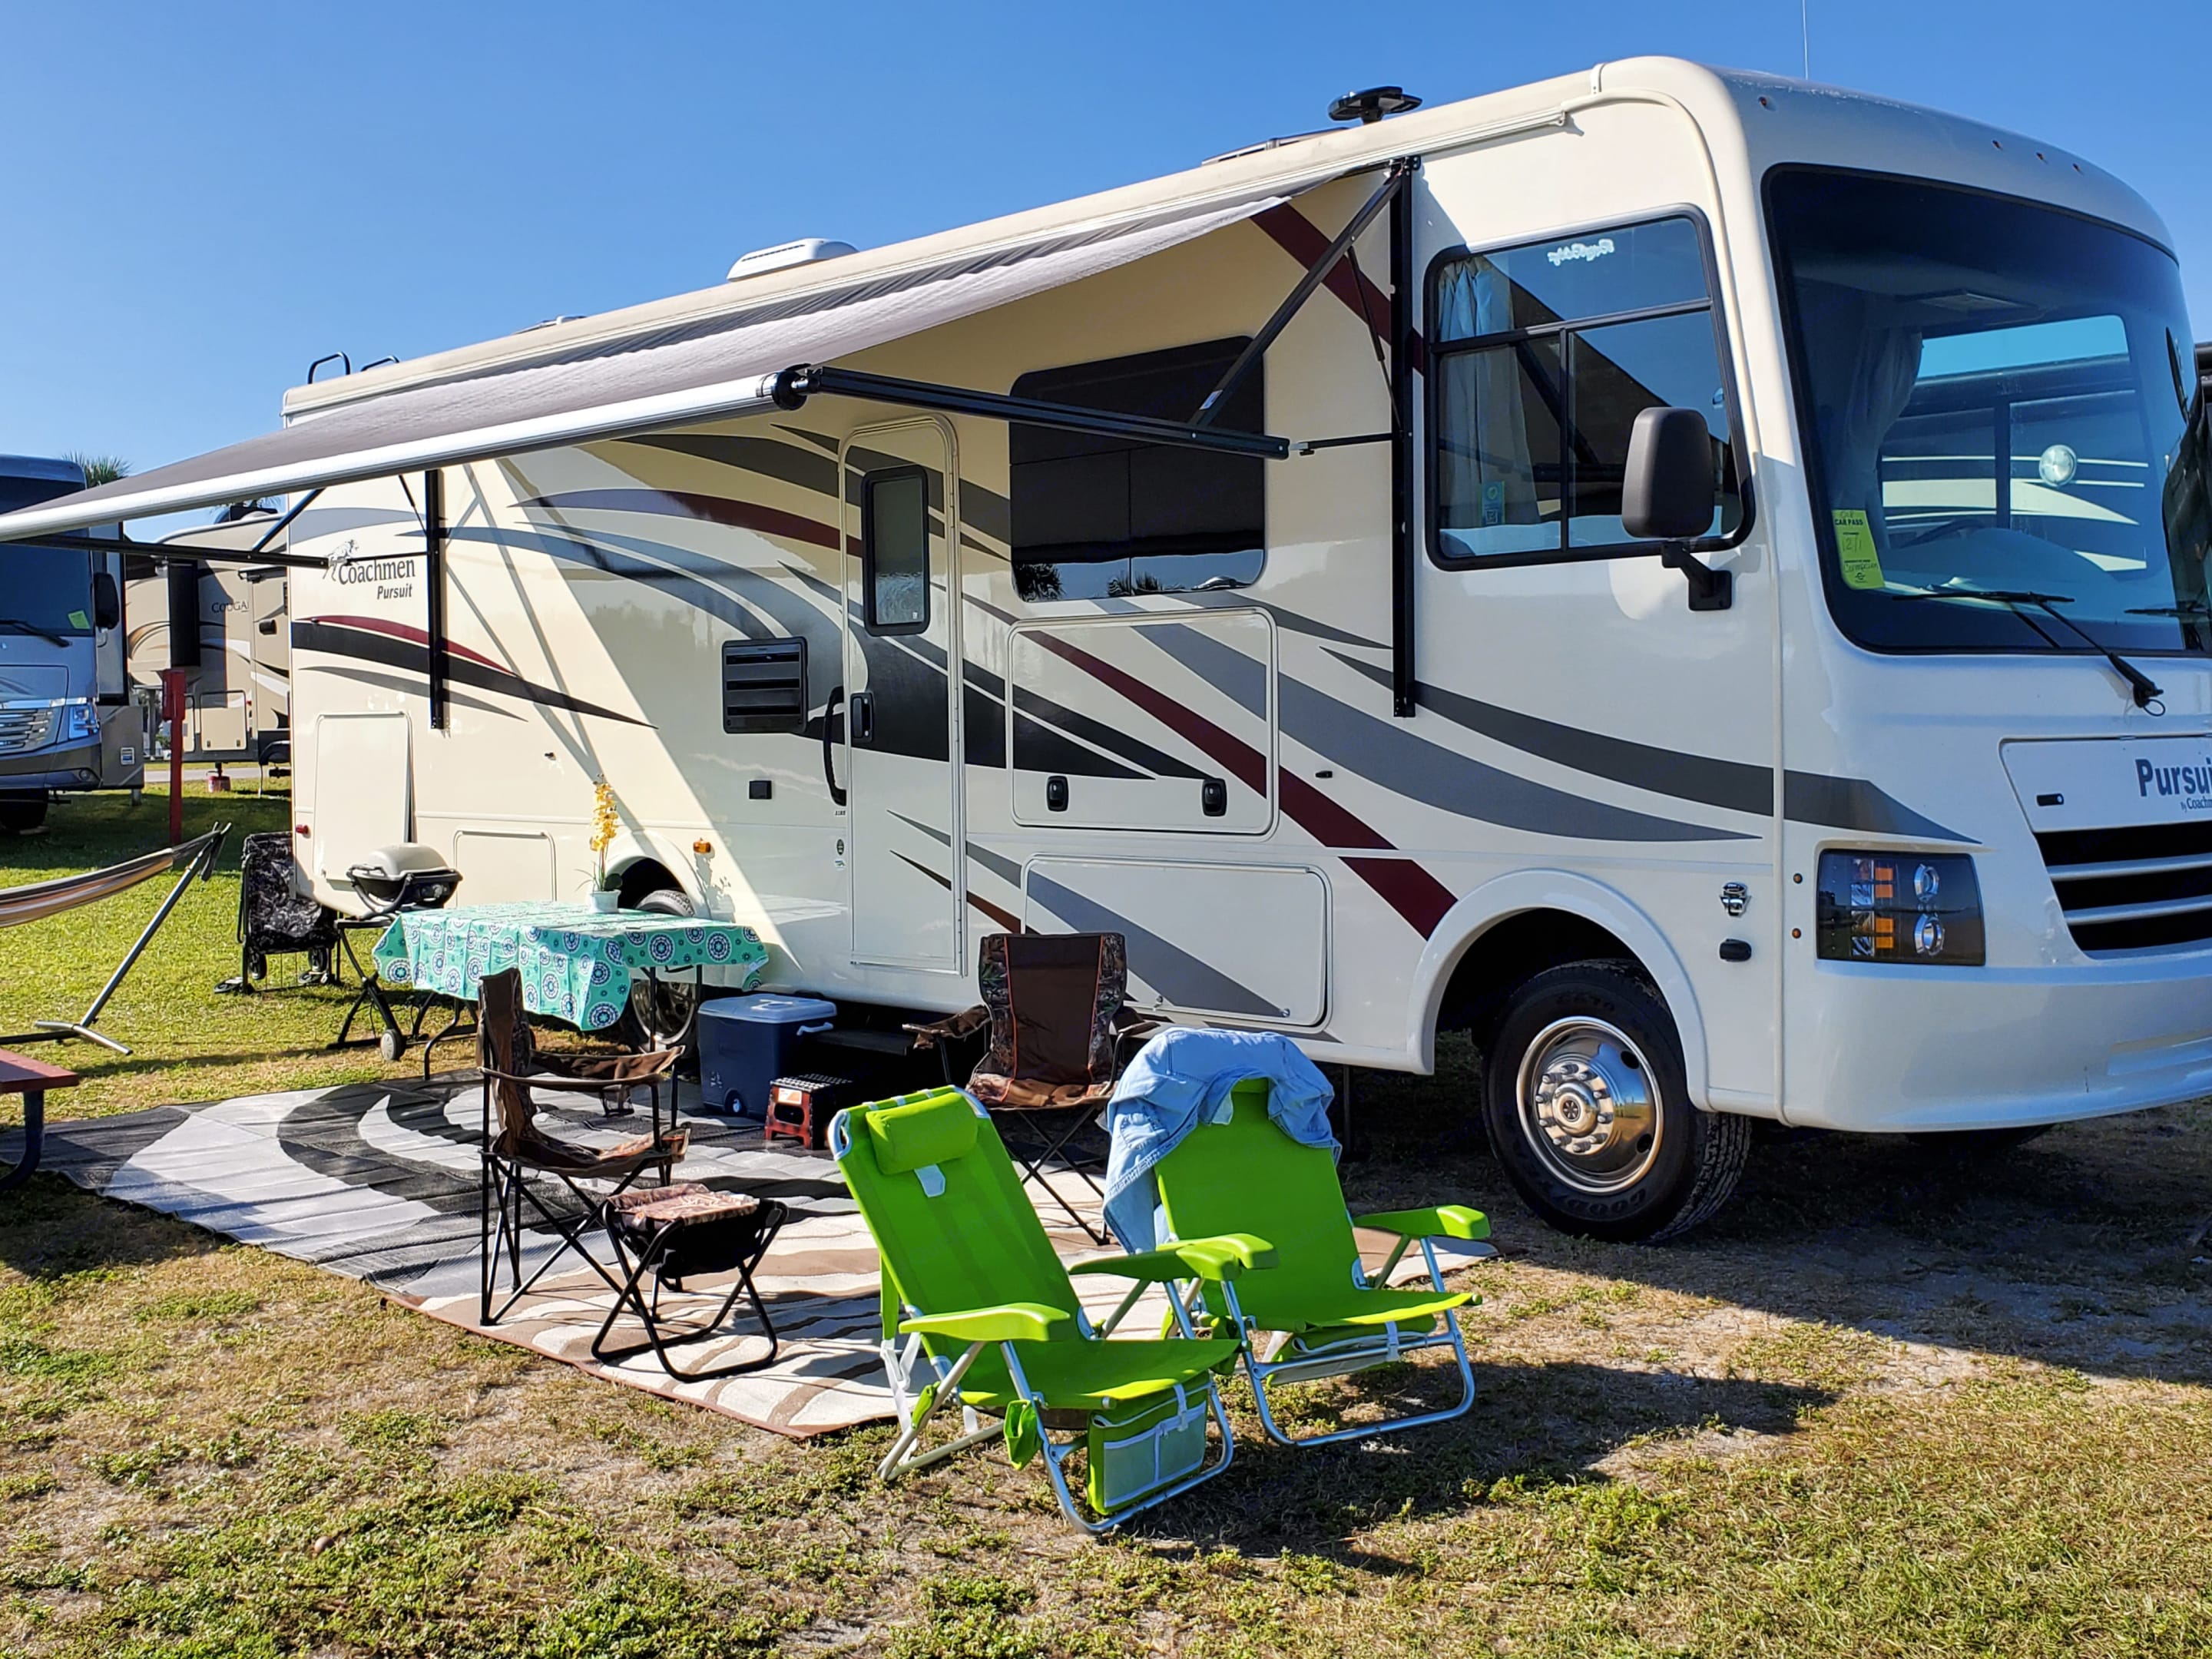 Brand New 2019 Pursuit.  Easy to drive and enjoy your adventure!  Delivery also available!. Coachmen Pursuit 2019